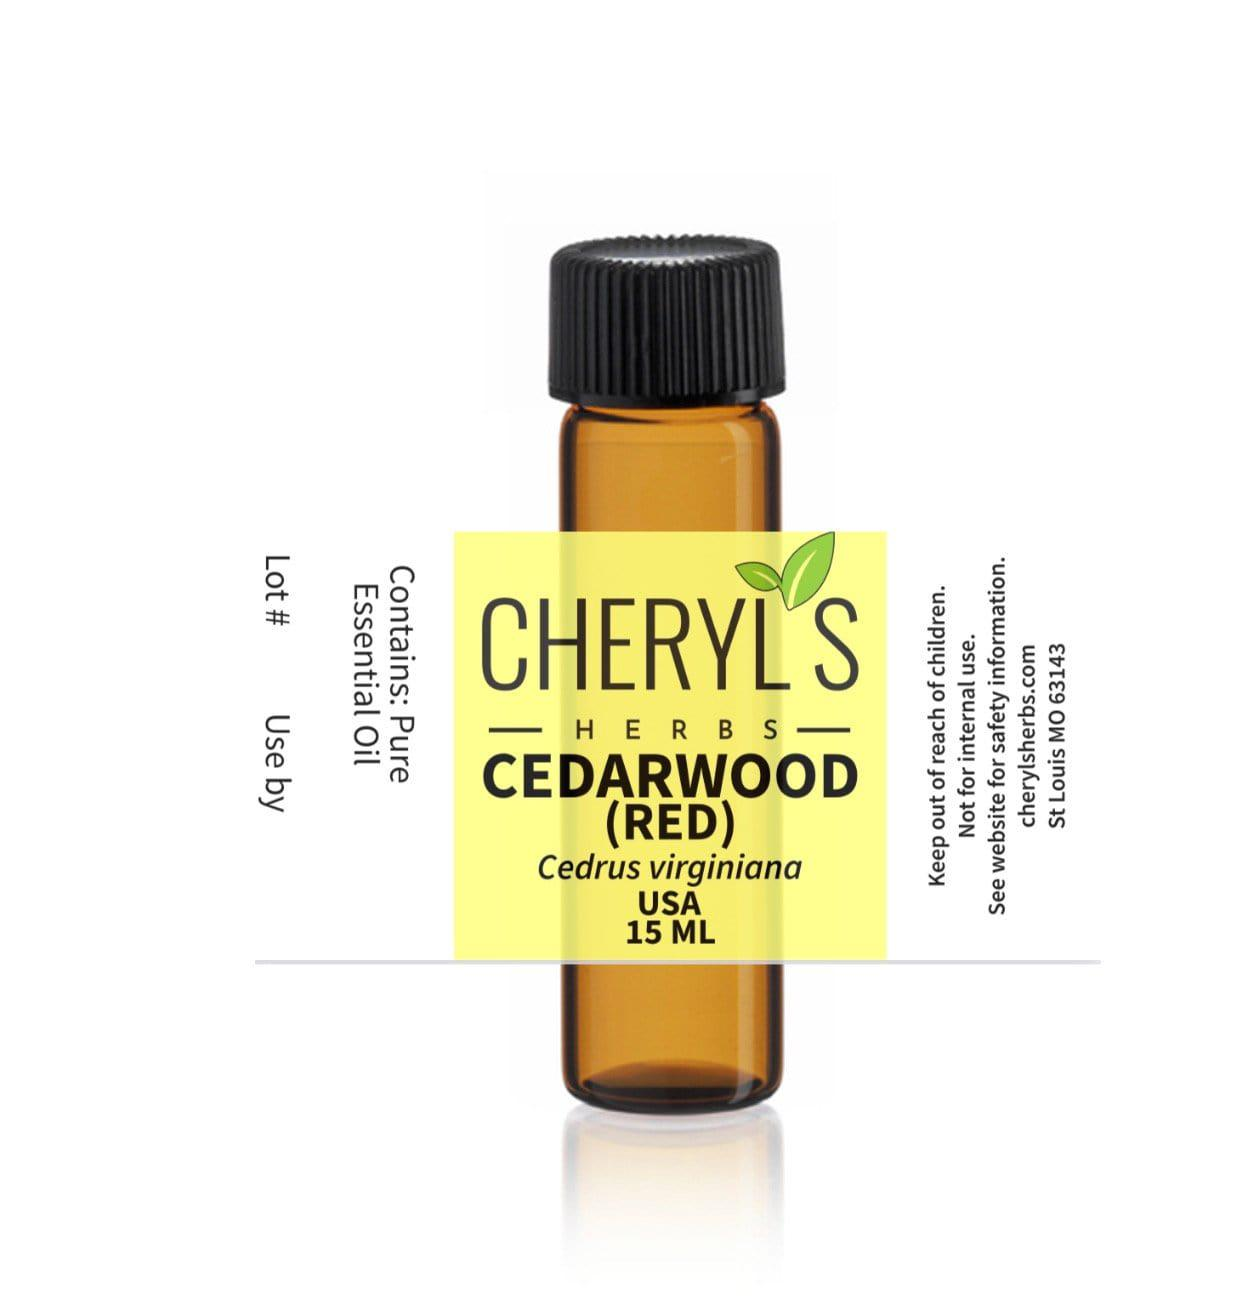 CEDARWOOD RED ESSENTIAL OIL - Cheryls Herbs